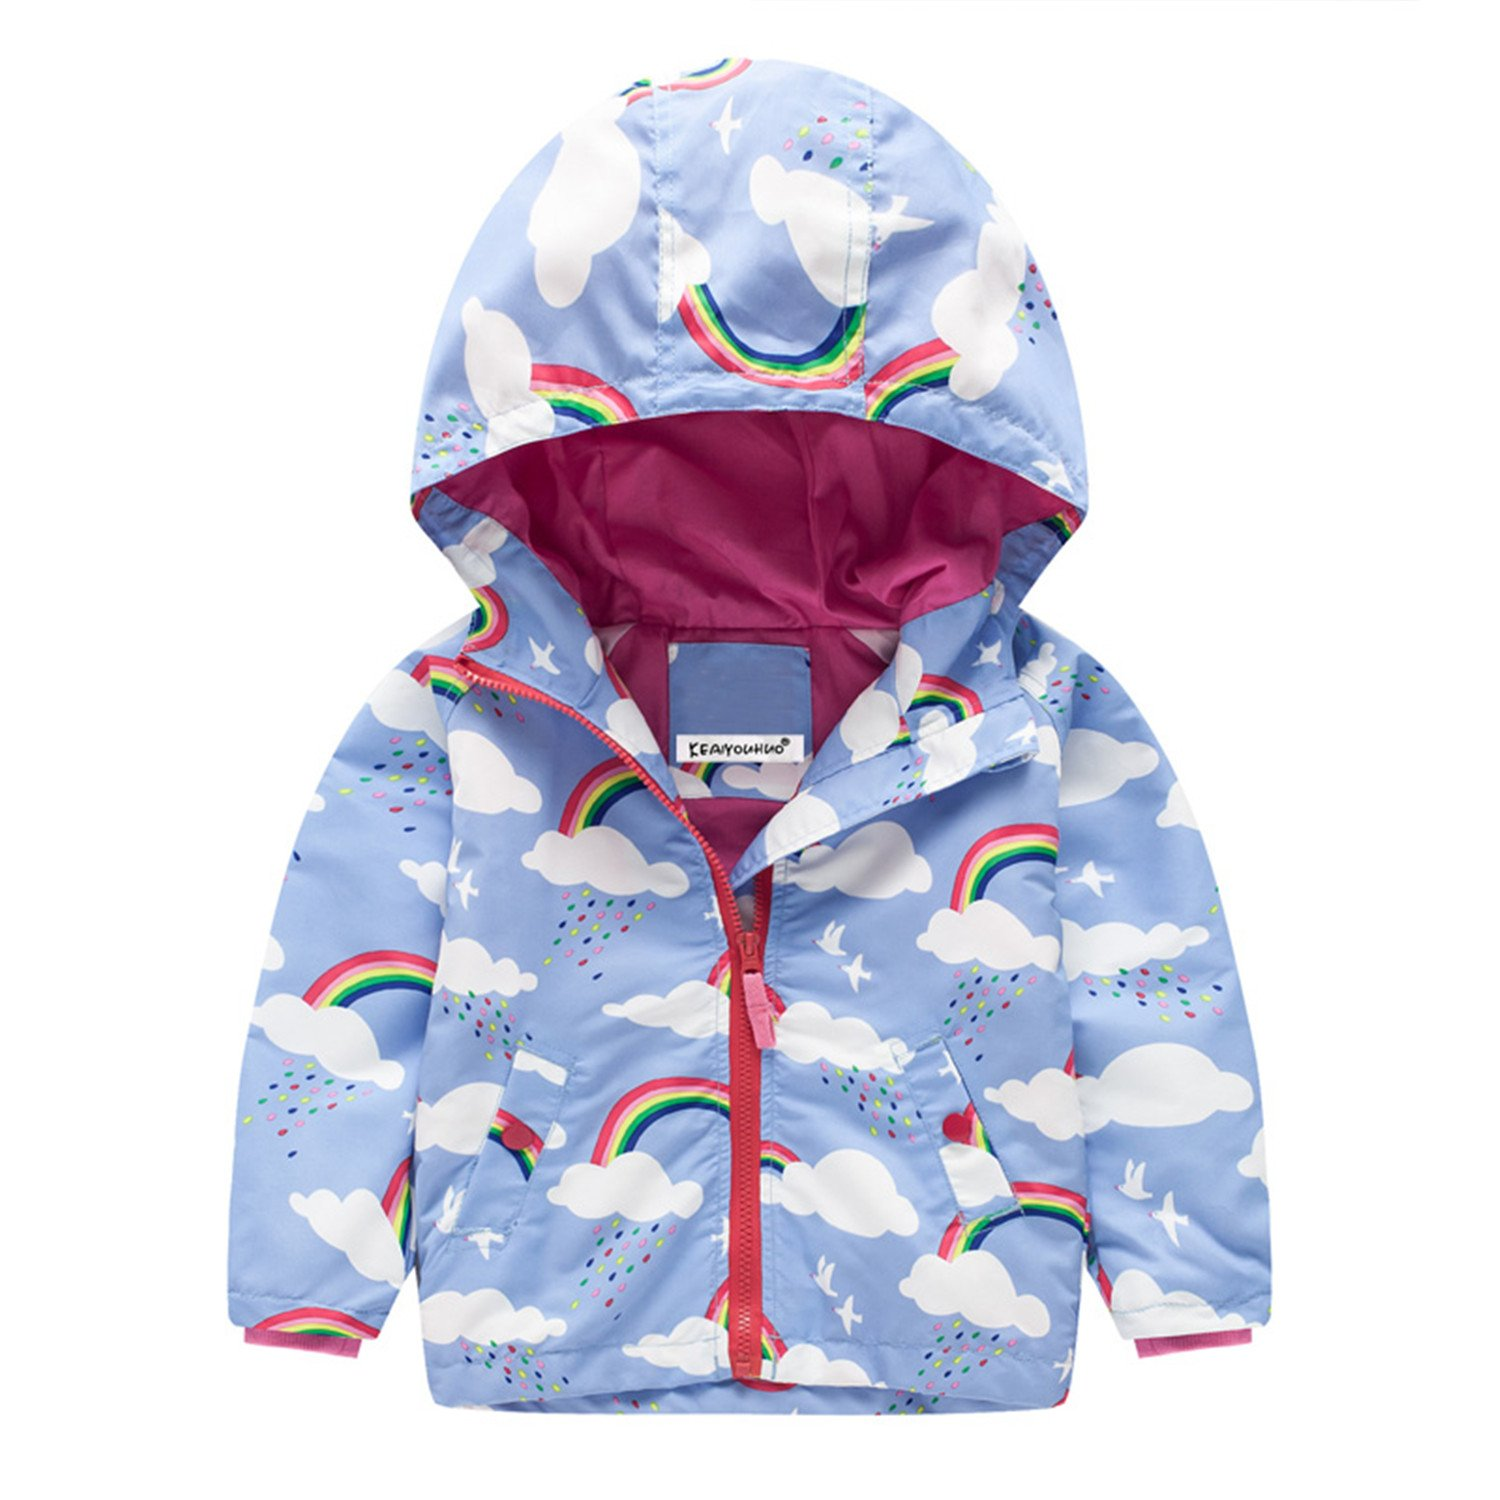 Beautymade Kids Windbreaker Girls Jackets Coat Girls Boys Coats Toddler Children Boys Outerwear 2-7T Blue 4